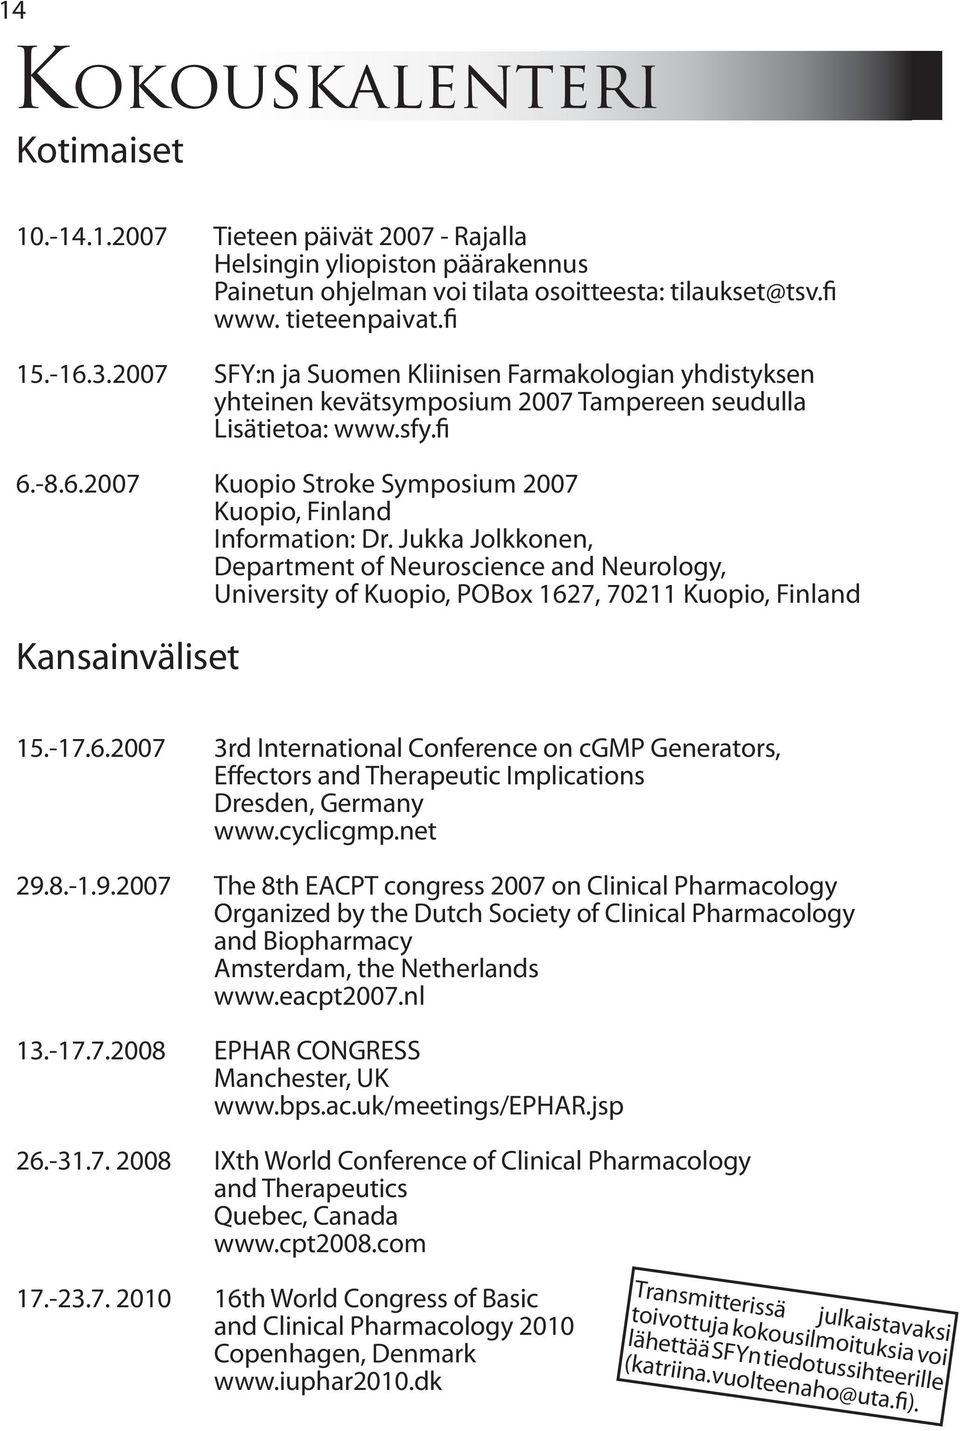 Jukka Jolkkonen, Department of Neuroscience and Neurology, University of Kuopio, POBox 162